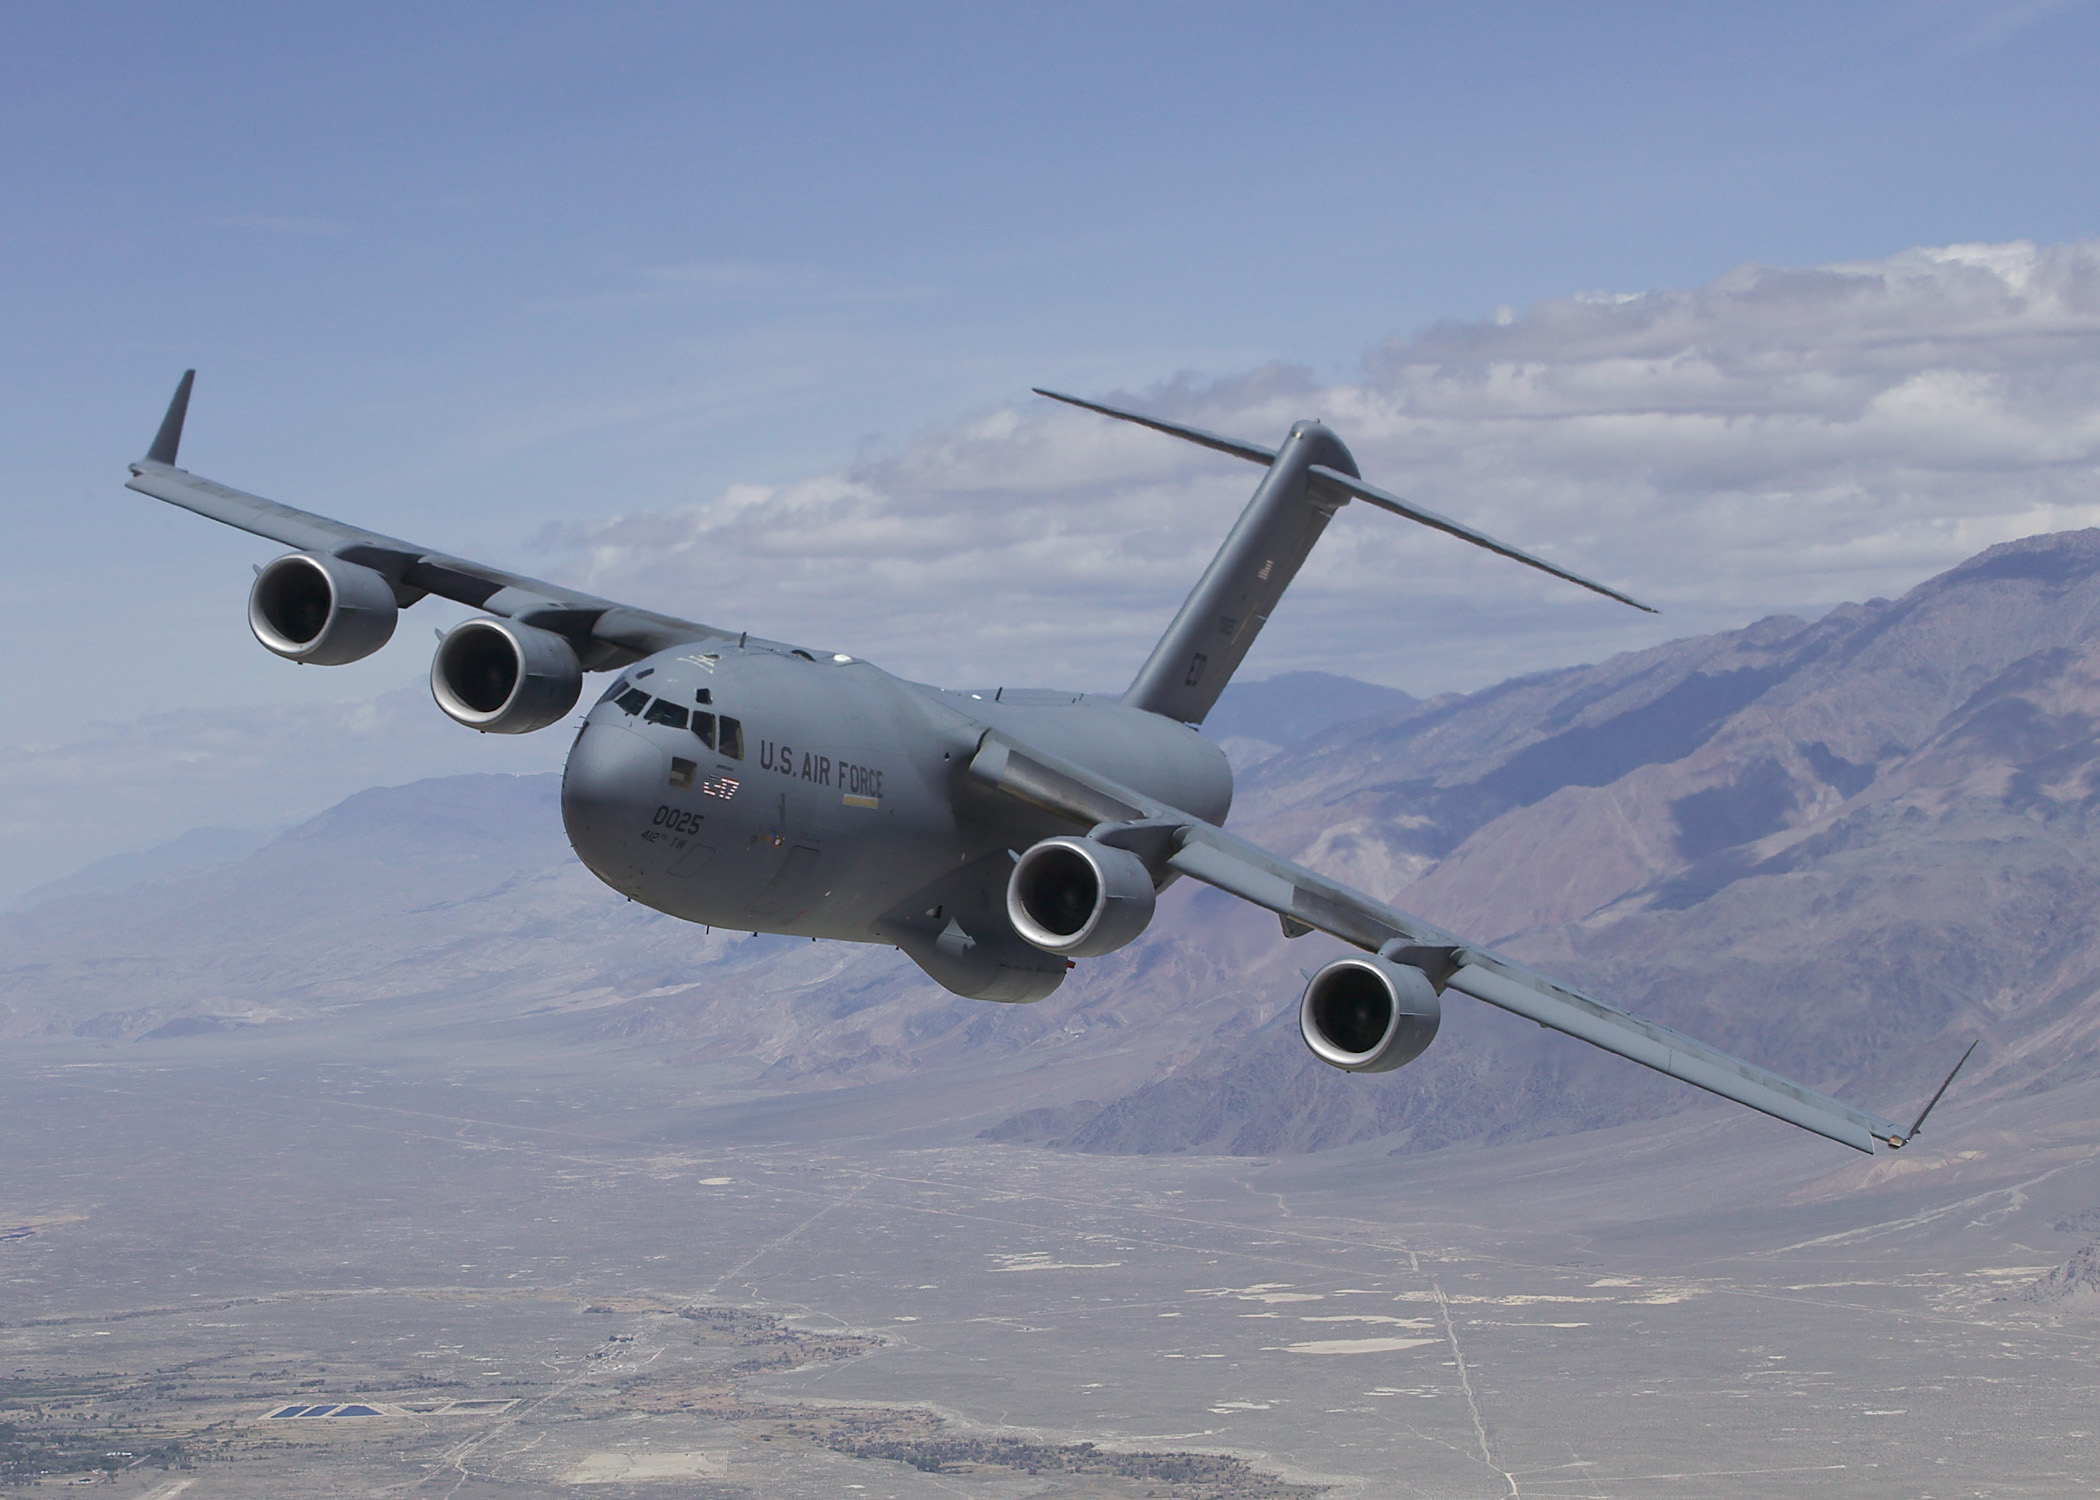 C-17 Globemaster III • Largest US Air Force Military Transport Aircraft